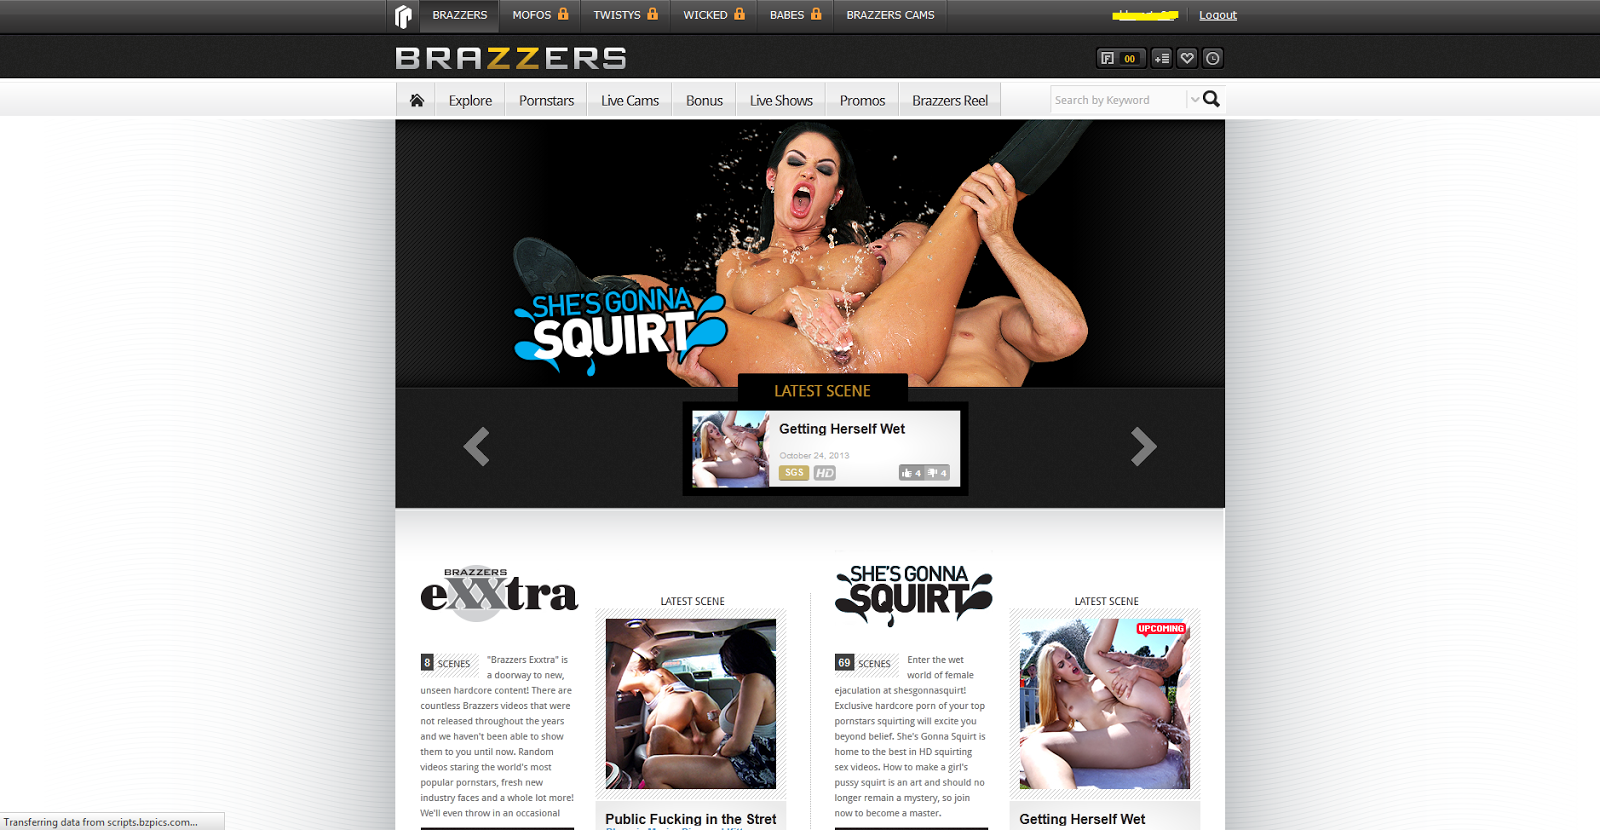 Free working brazzers passwords